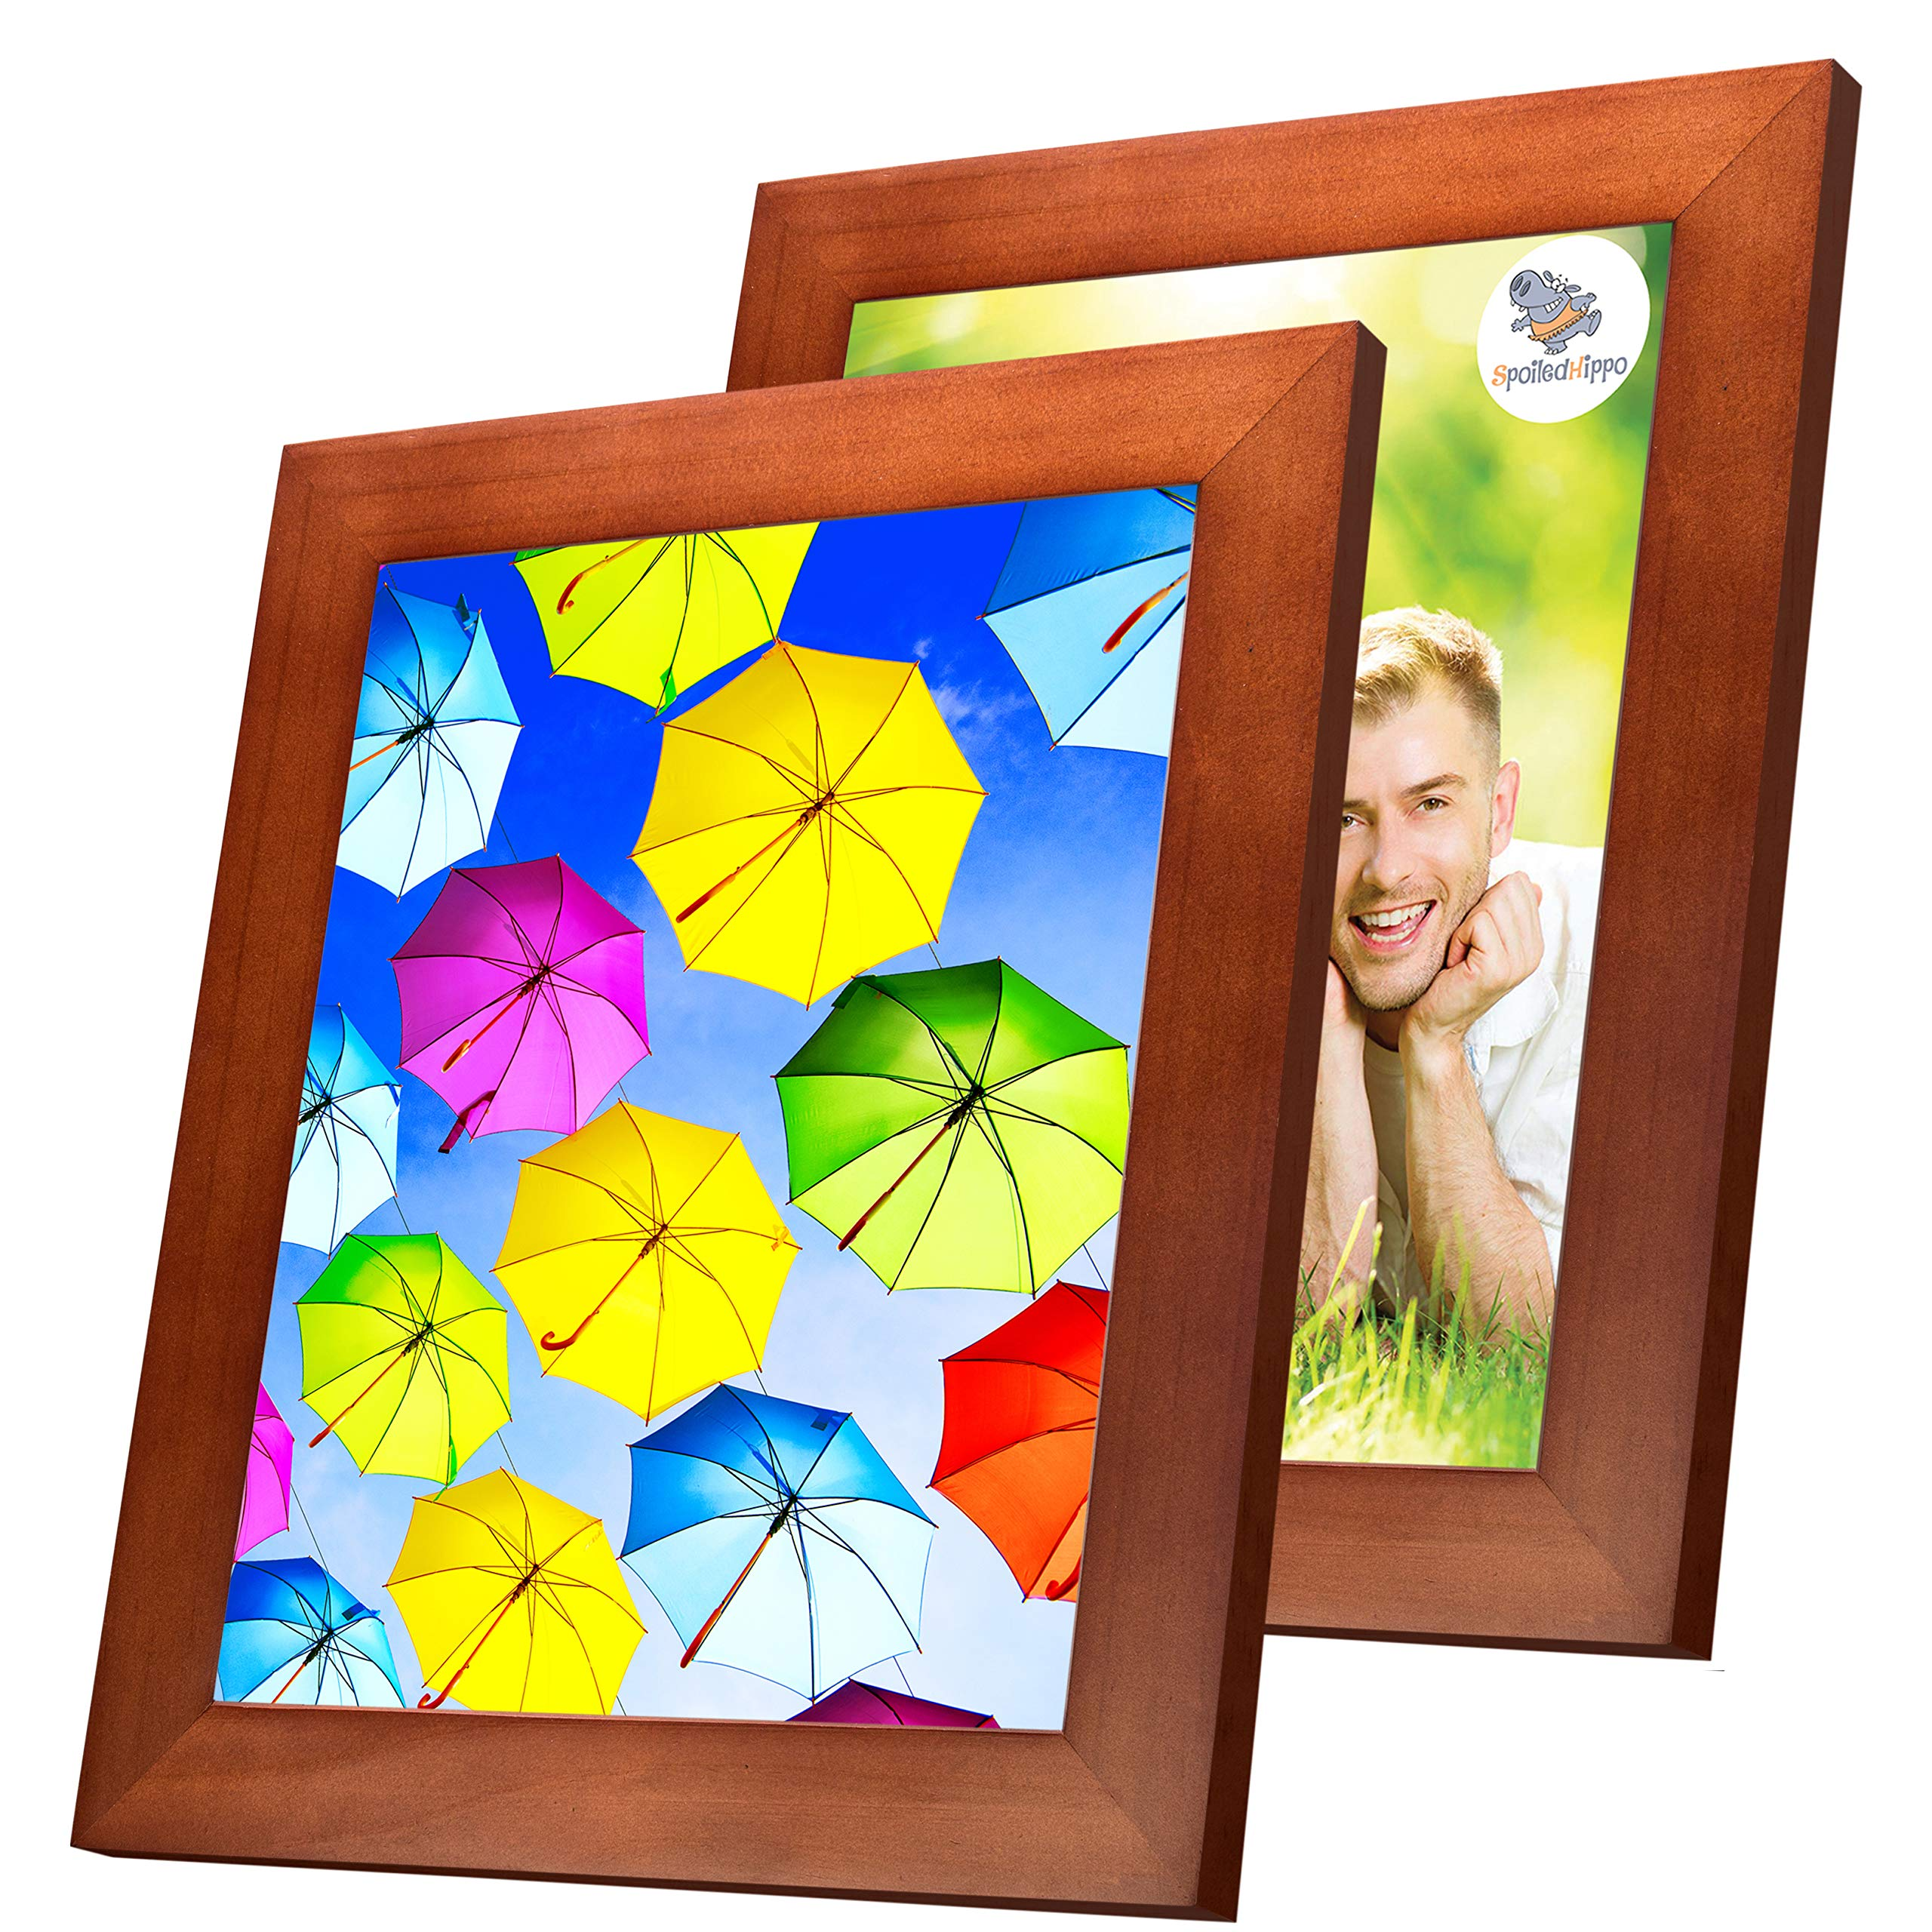 SpoiledHippo 8x10 Picture Frame Brown with Mat (2 Pack) - Solid Wood Photo Frames with Glass - Wall Frame for 8 by 10 Inch Photos or Standing Table Top or Desk for Poster Collage Diploma Certificate by SpoiledHippo